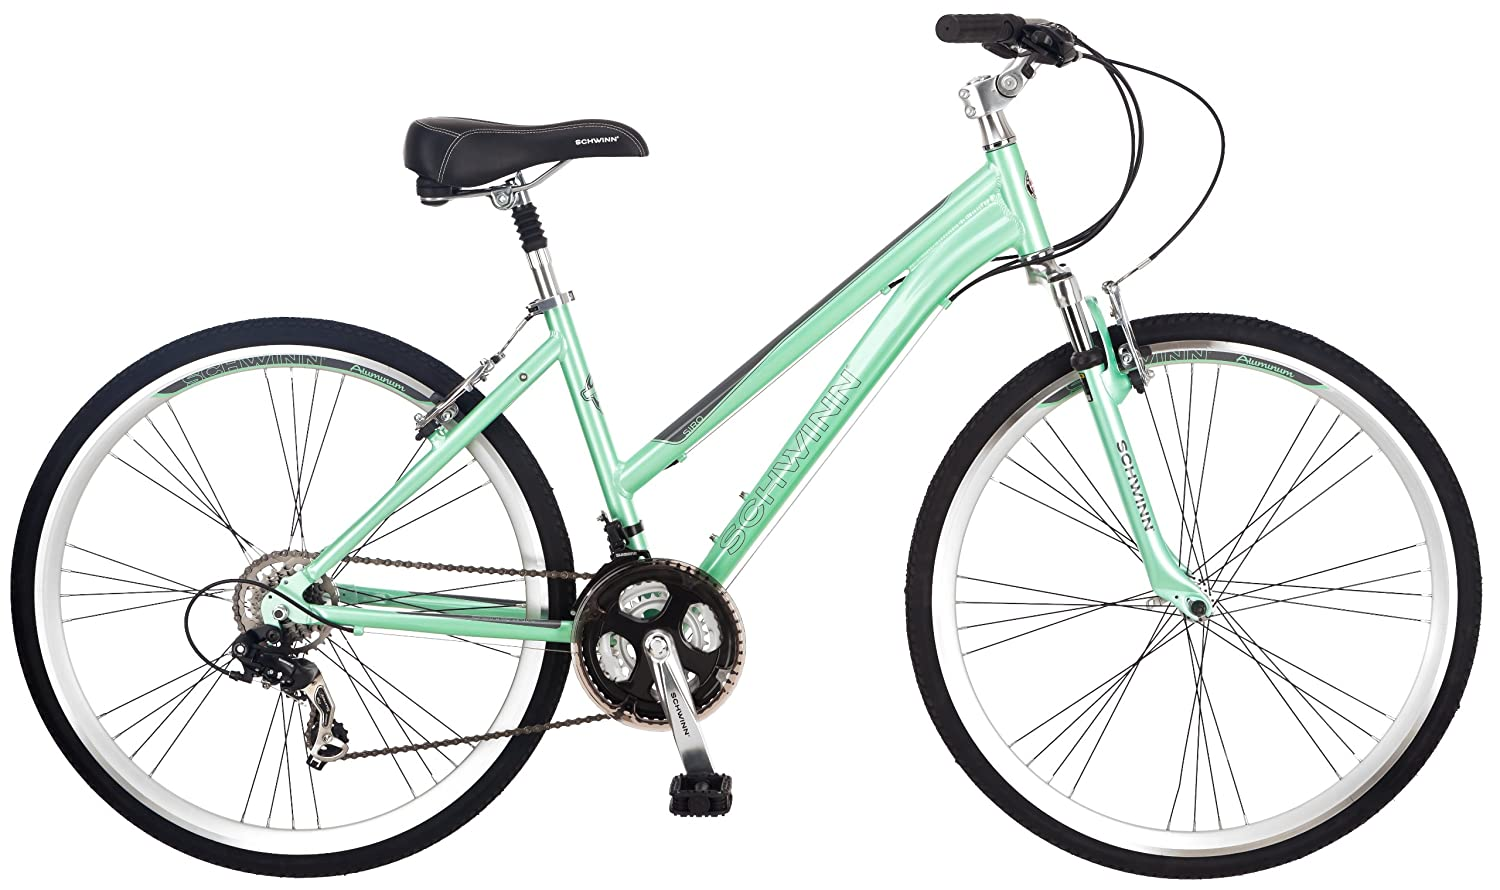 Best Hybrid Bikes For Women Amazon com Schwinn Women s